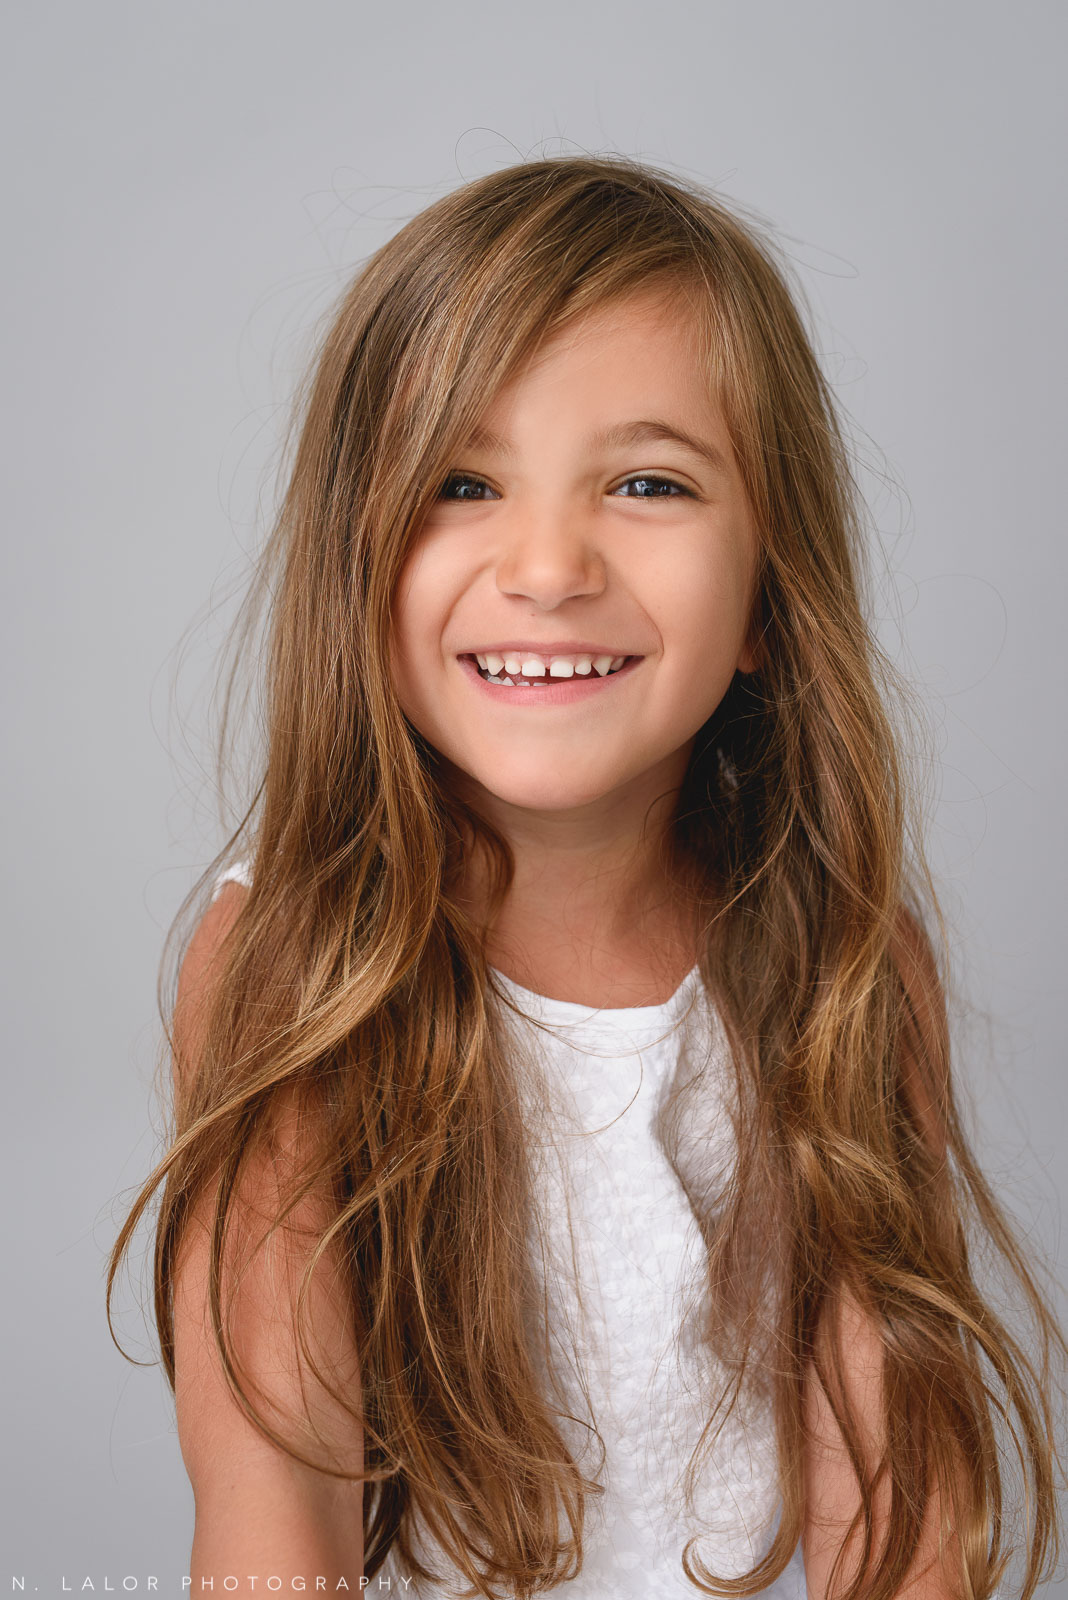 The cheerful one. Family photo session by N. Lalor Photography in Greenwich, CT.